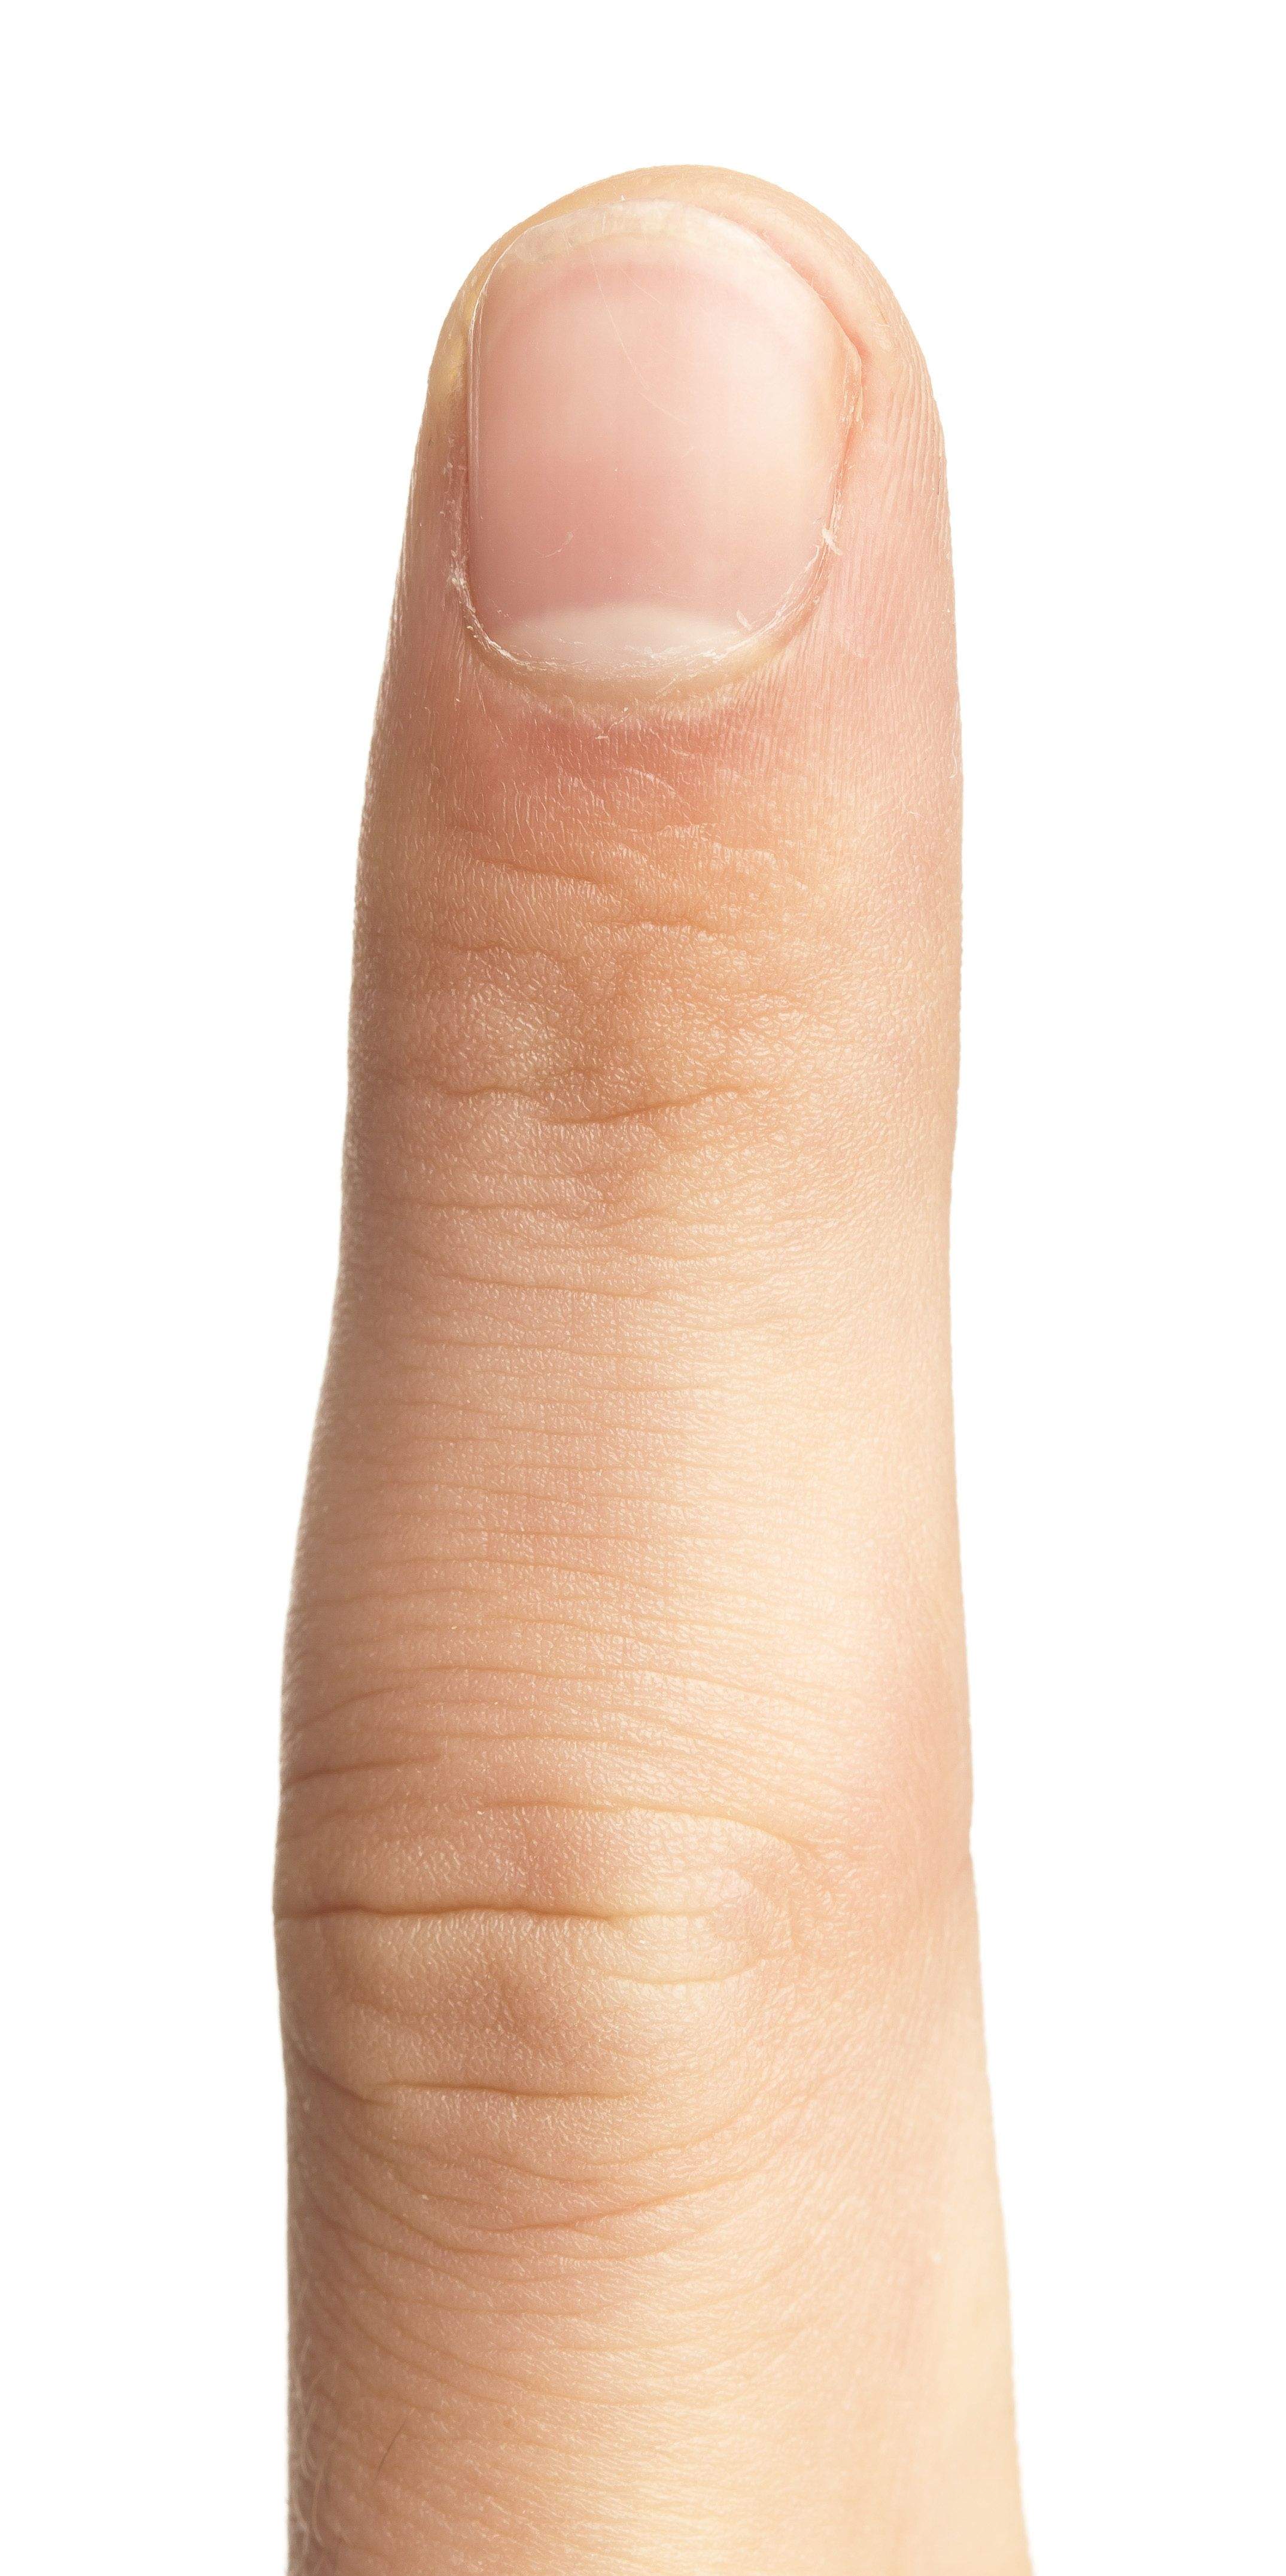 7 Things Your Nails Say About You recommendations